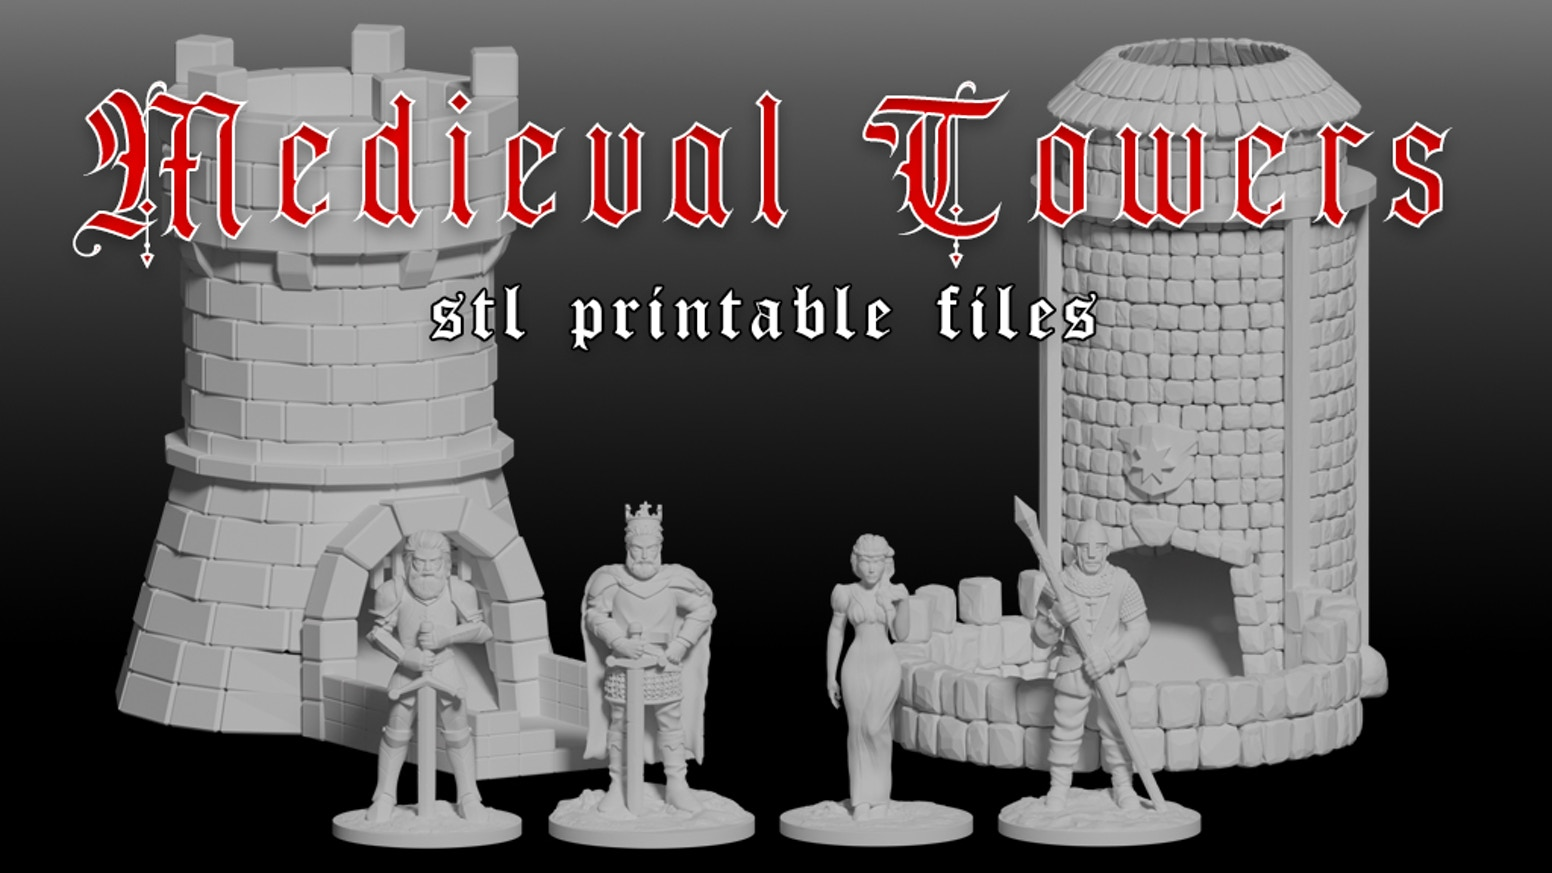 Epic New Dice Towers That You Can Print on Your 3D Printer Along With Some Bonus Miniatures